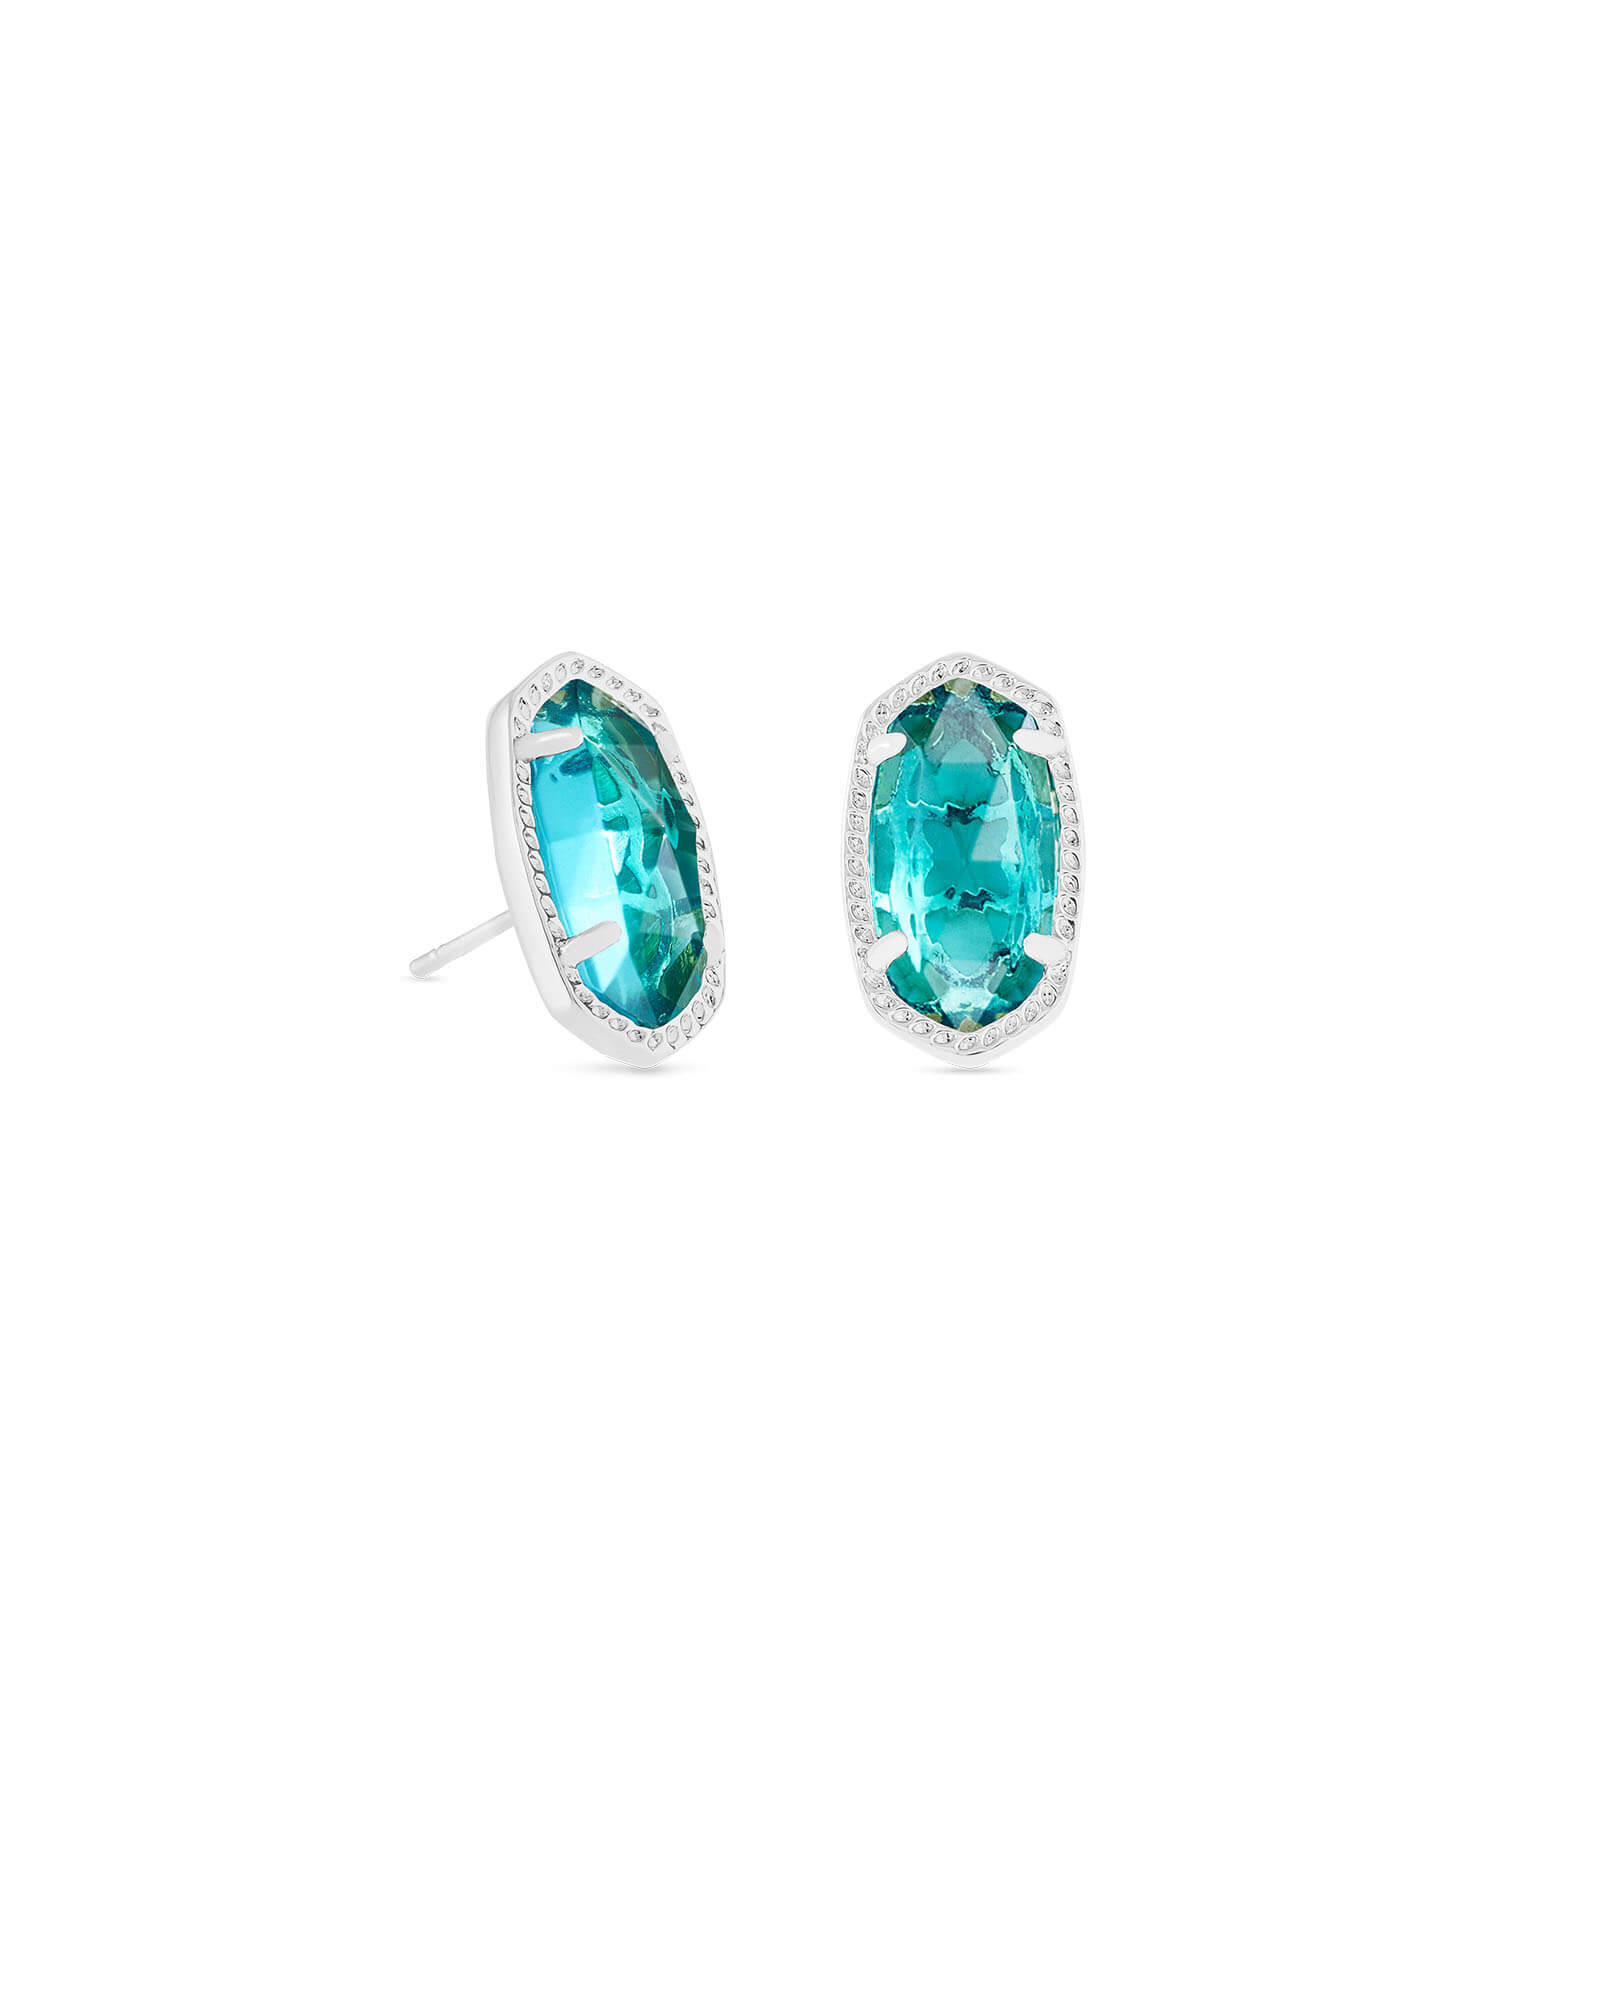 Ellie Silver Stud Earrings in London Blue